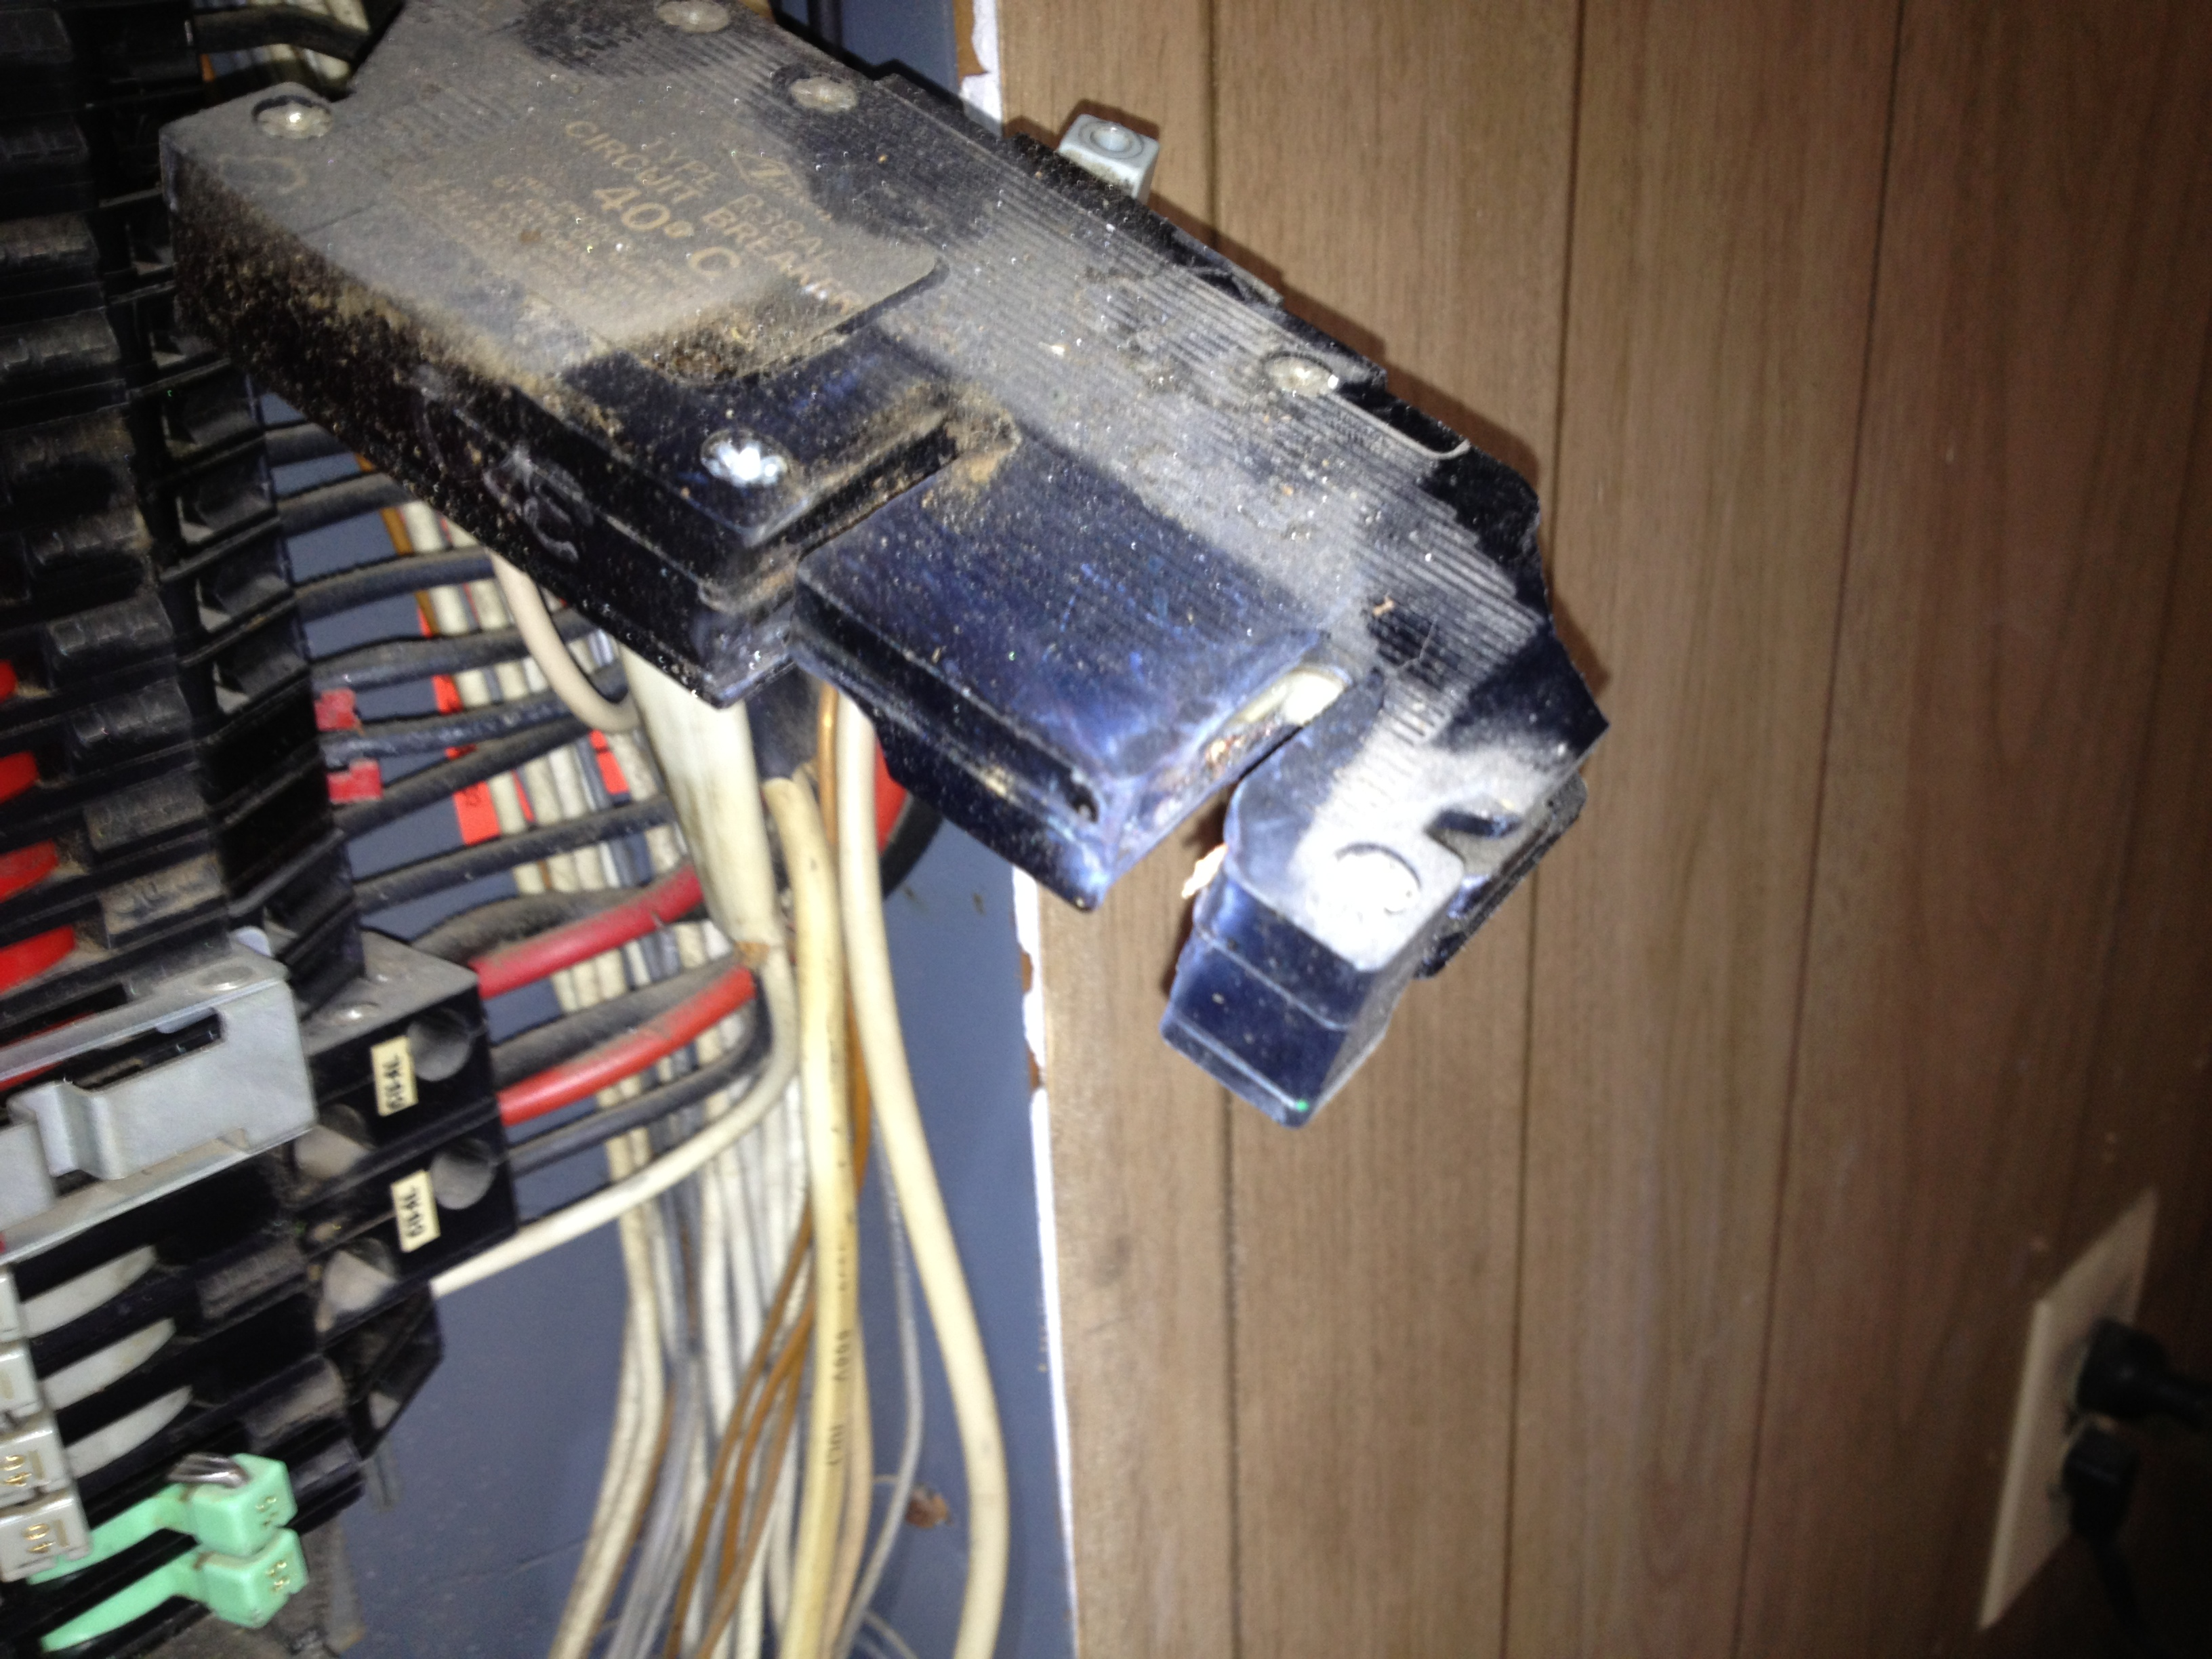 Do You Have One Of These In Your Home Touch Electricians Dangerous Electrical Wiring Breakers